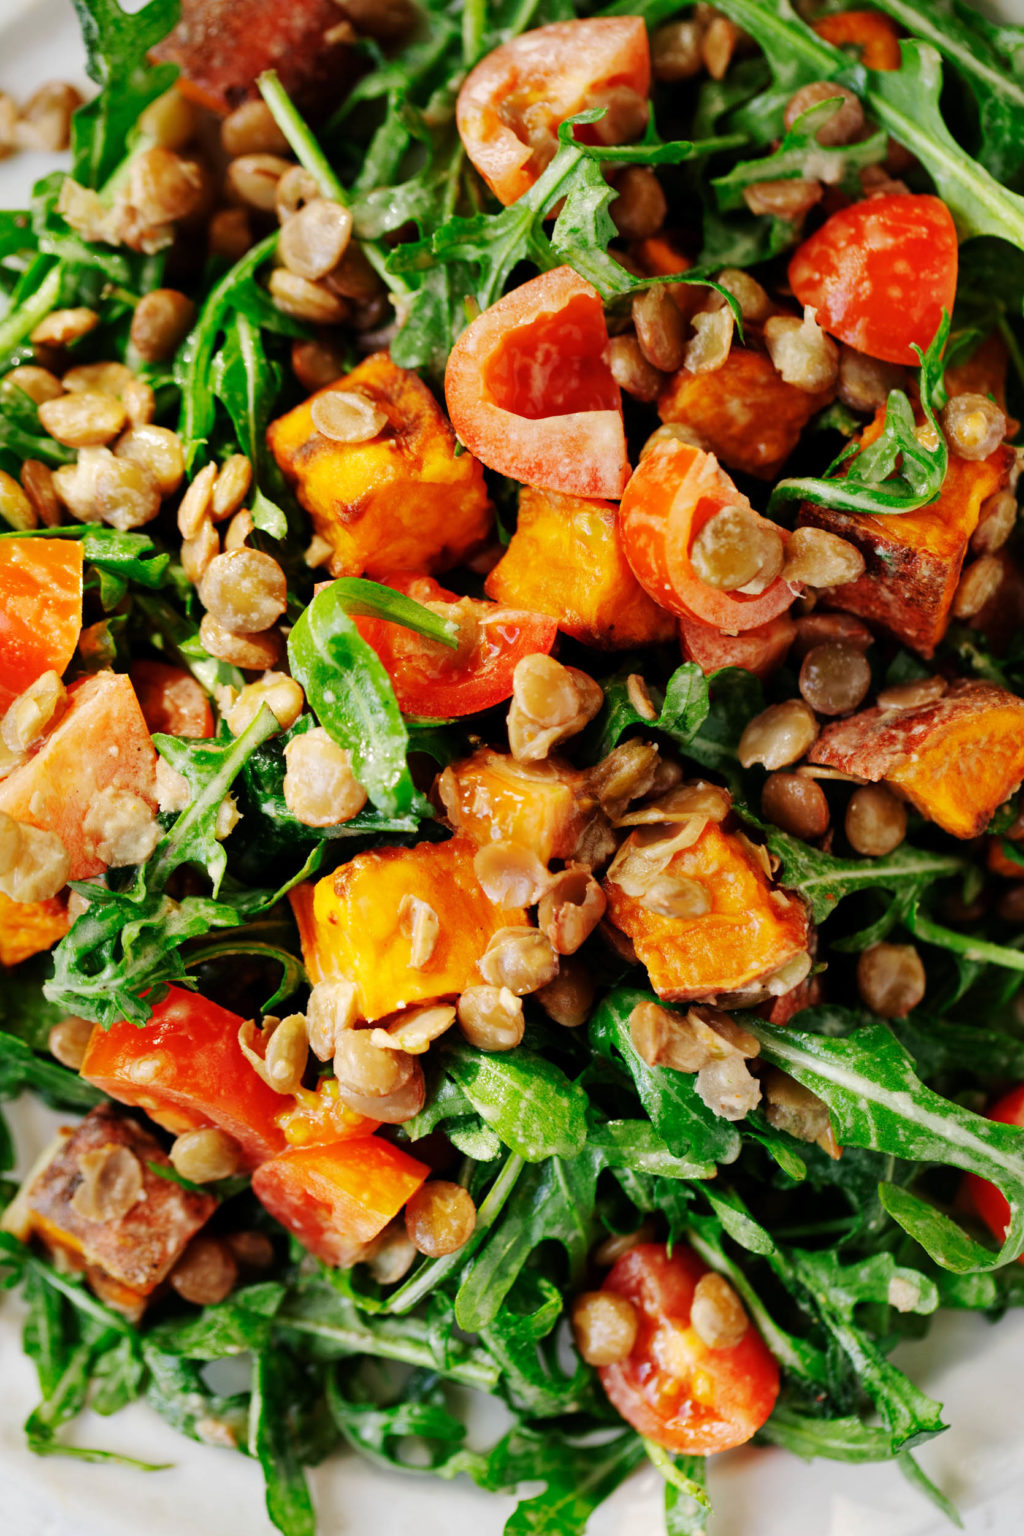 A close up image of a mixture of salad greens, roasted sweet potatoes, grape tomatoes, and lentils.